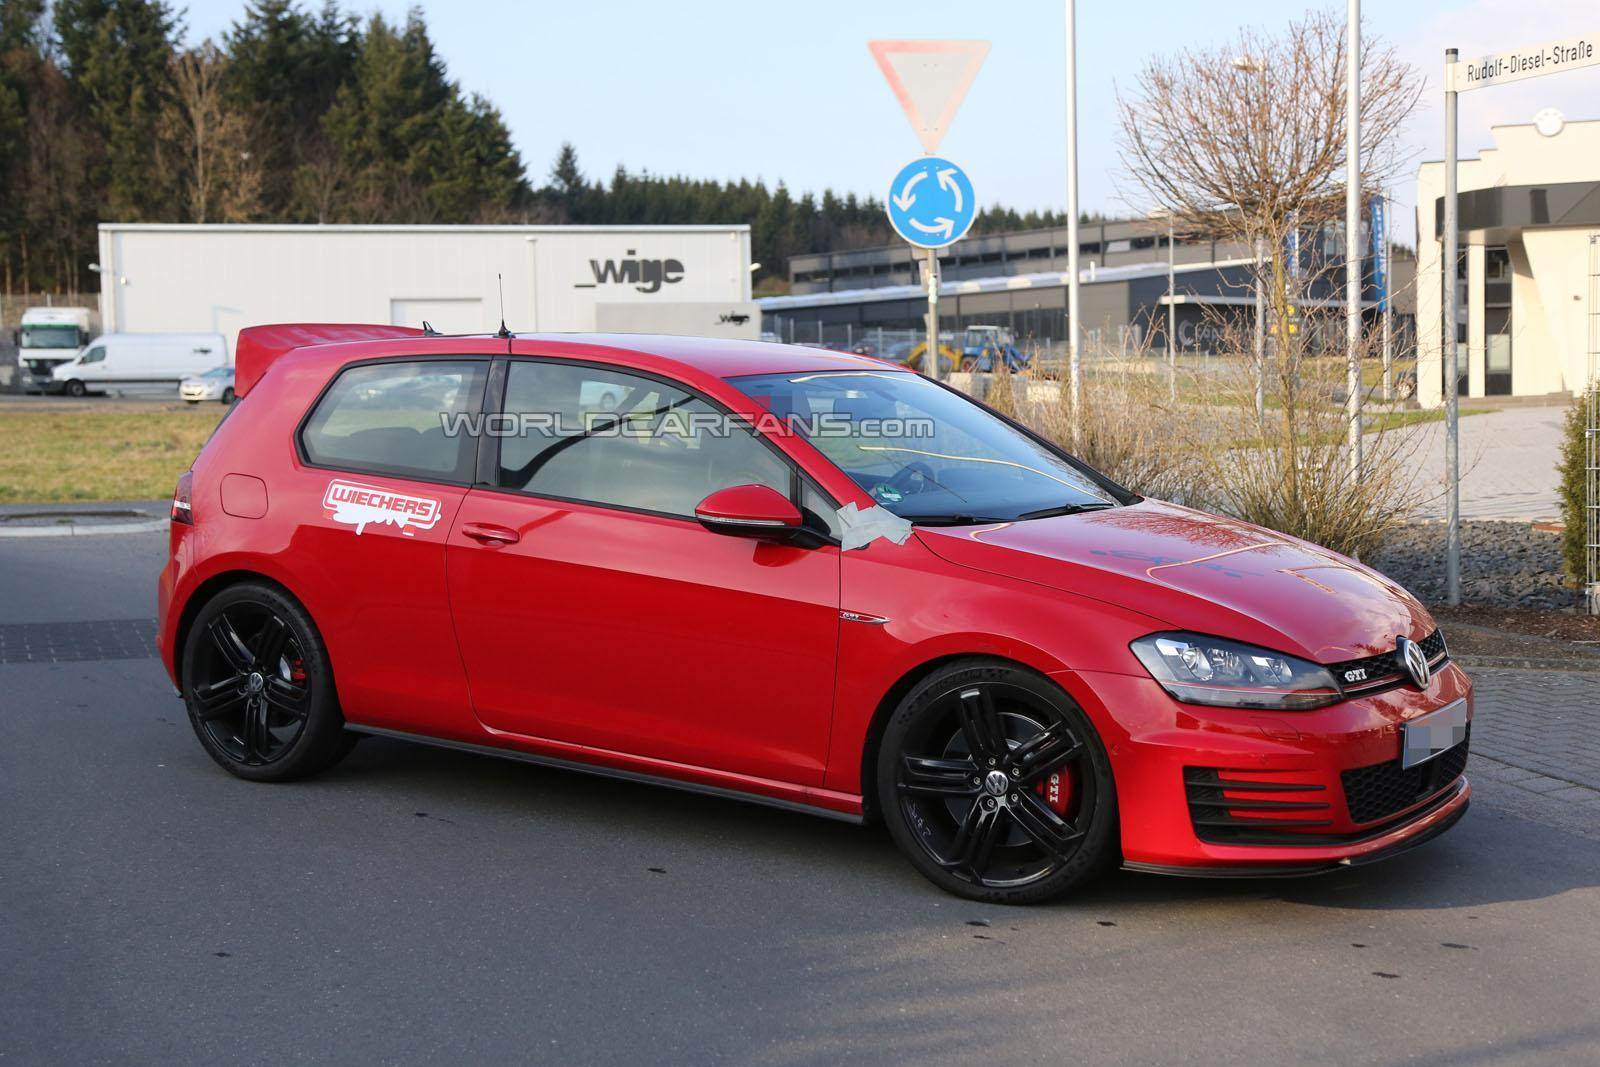 Volkswagen golf gti 2014 tuned